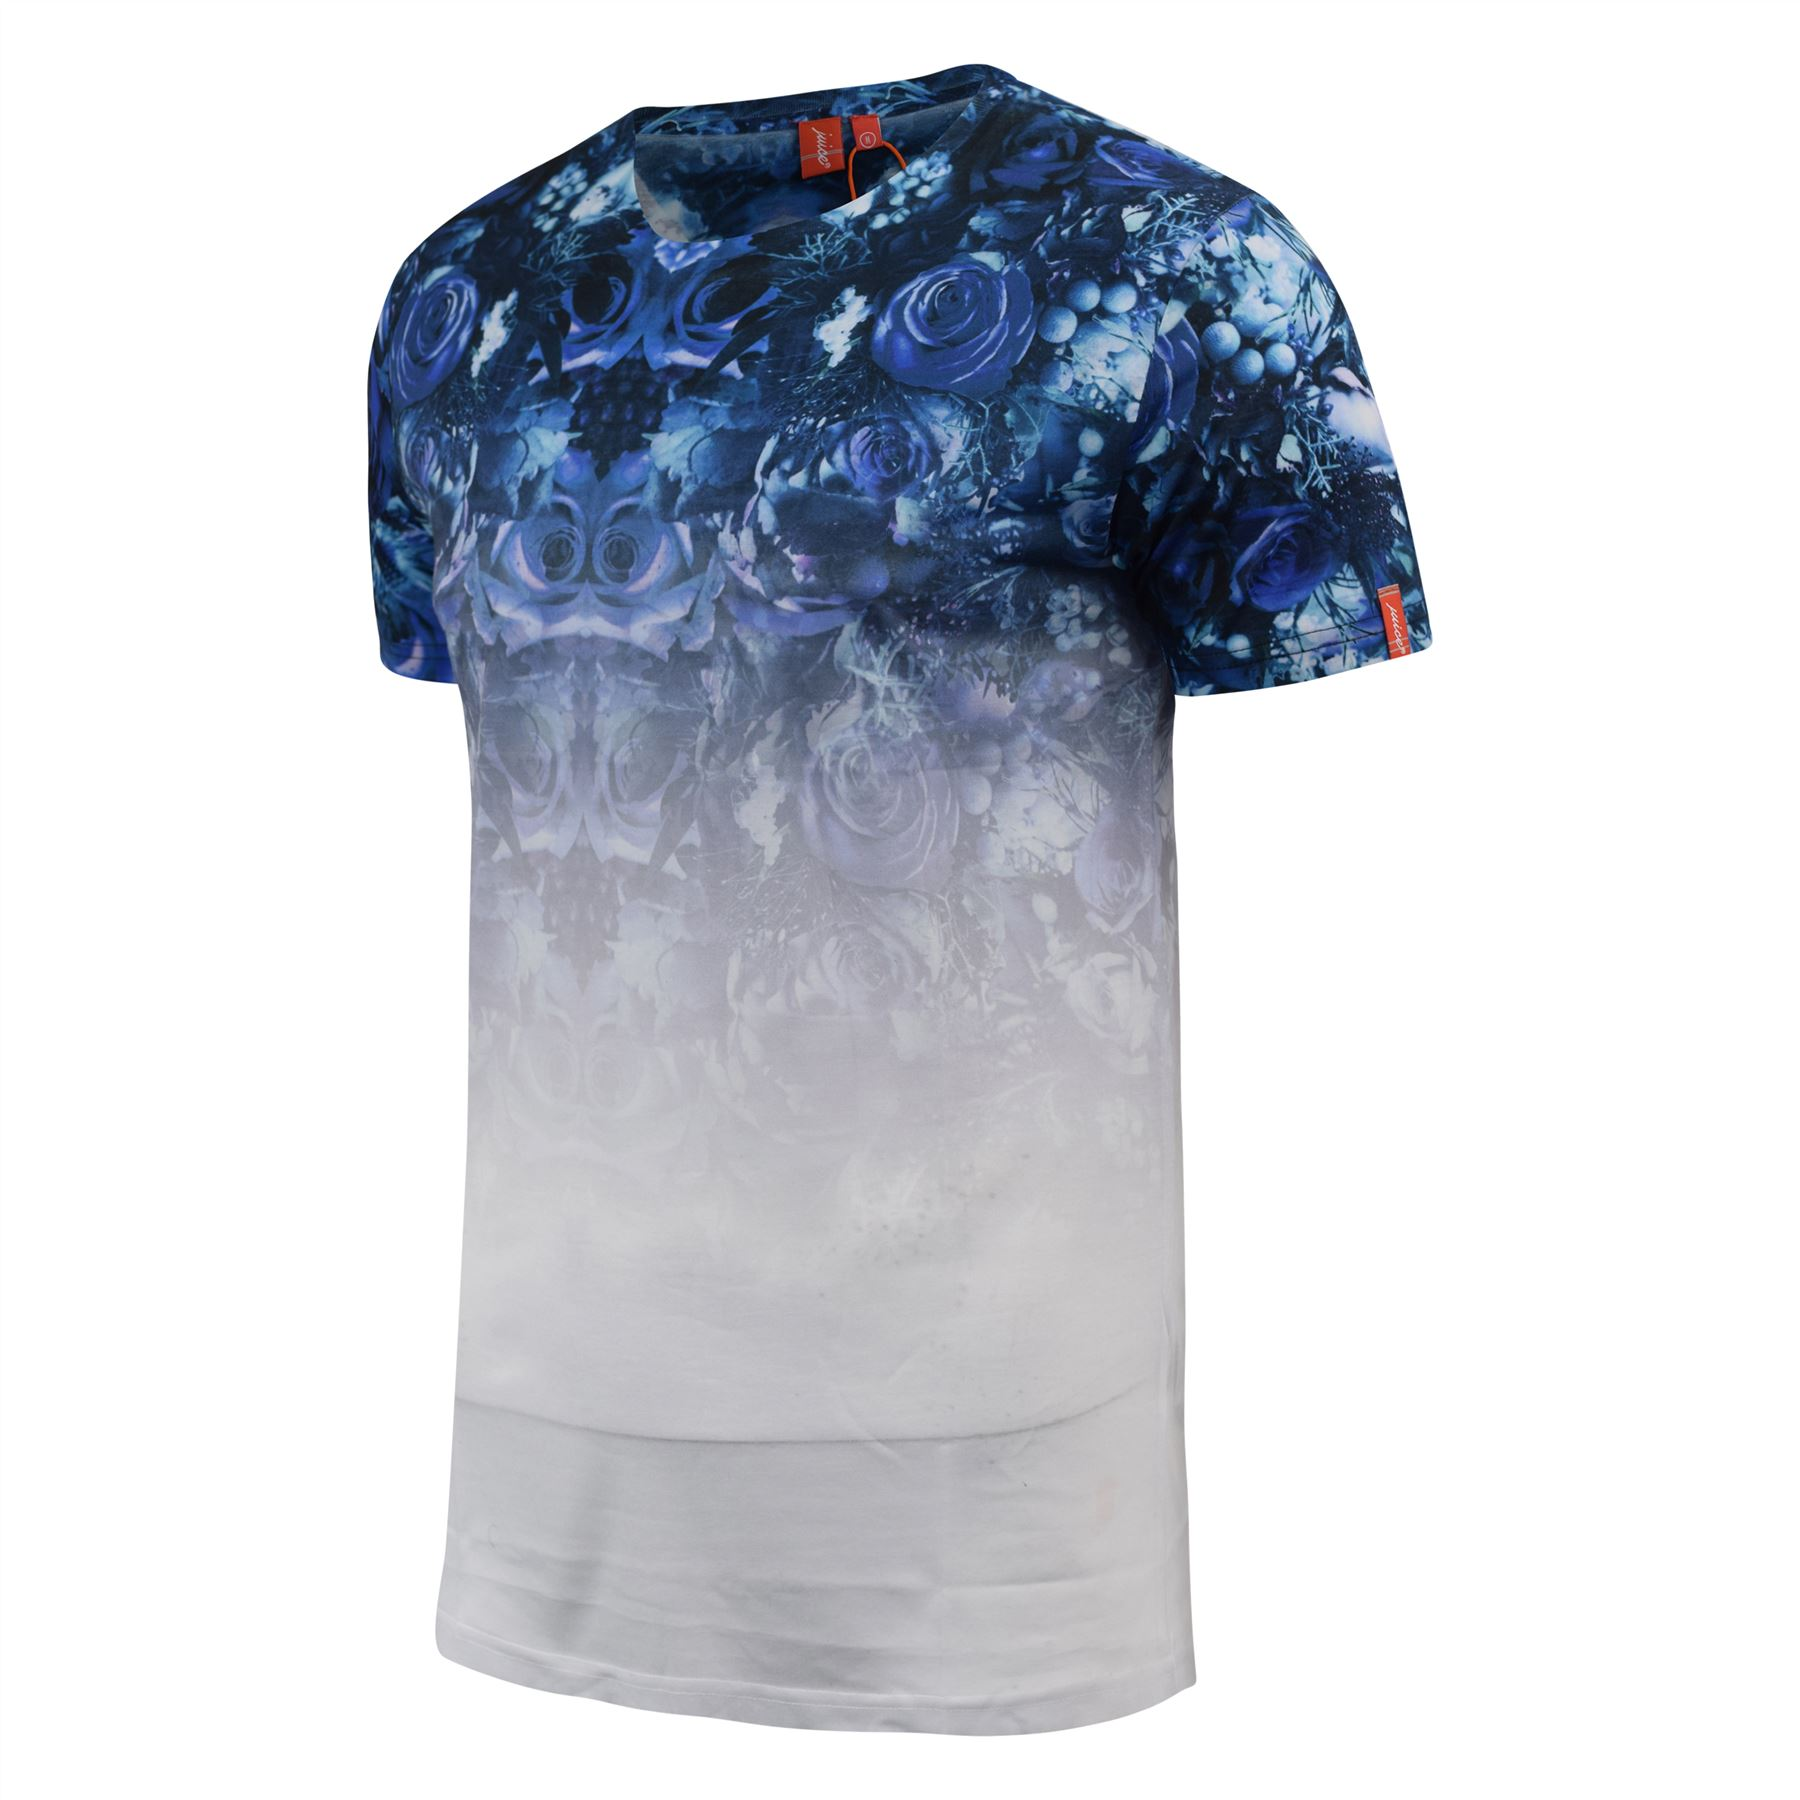 Mens-T-Shirt-Juice-Floral-Print-Flower-Crew-Neck-Tee-Top thumbnail 20